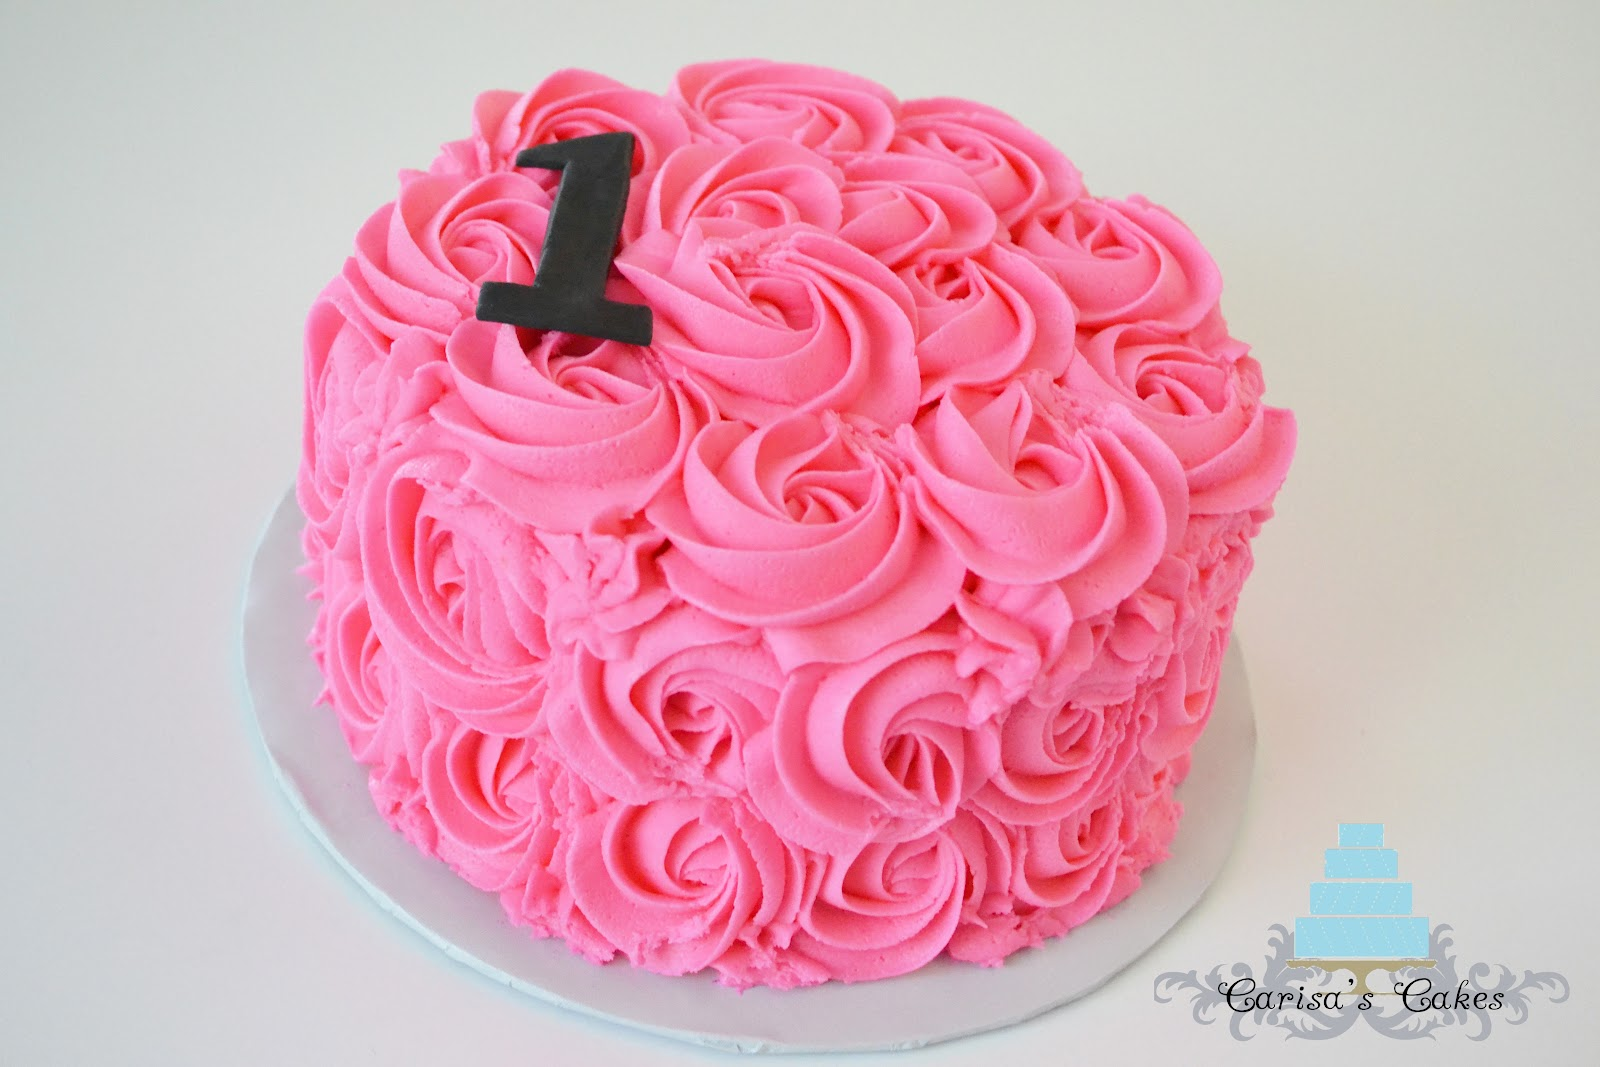 Images For Rose Cake : Carisa s Cakes: August 2012